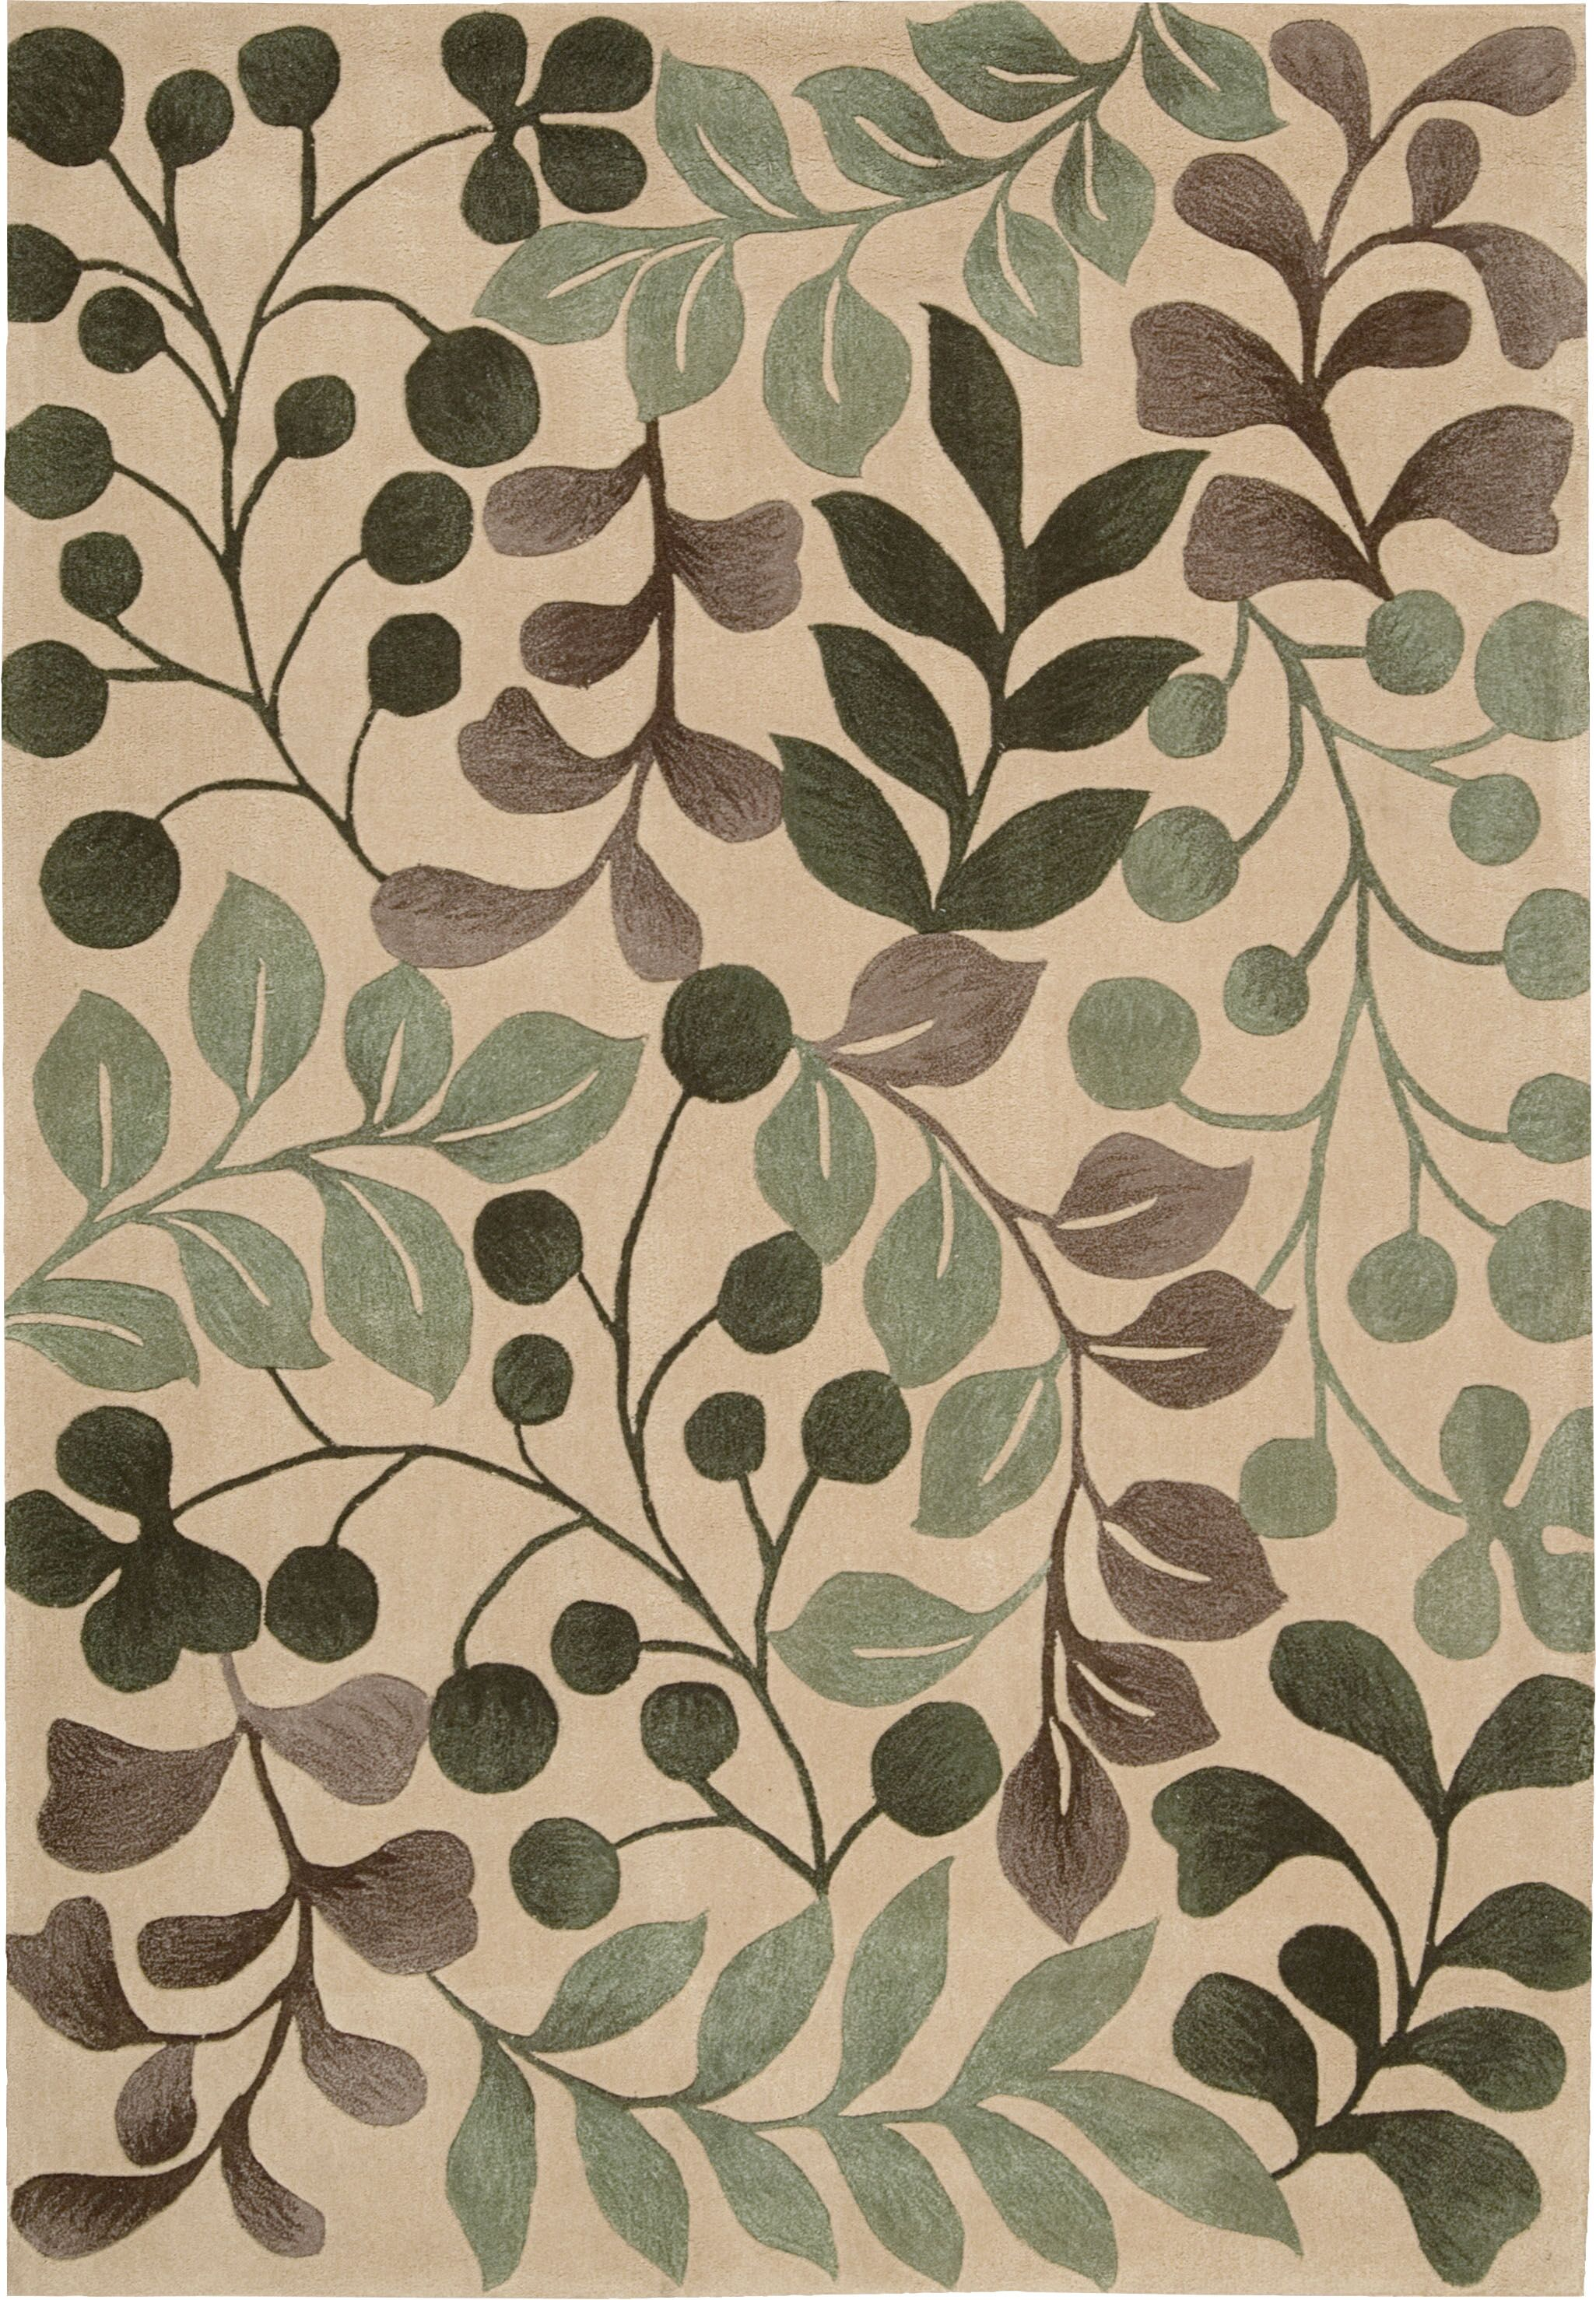 Brittni Hand-Tufted Vanilla Area Rug Rug Size: Rectangle 8' x 10'6